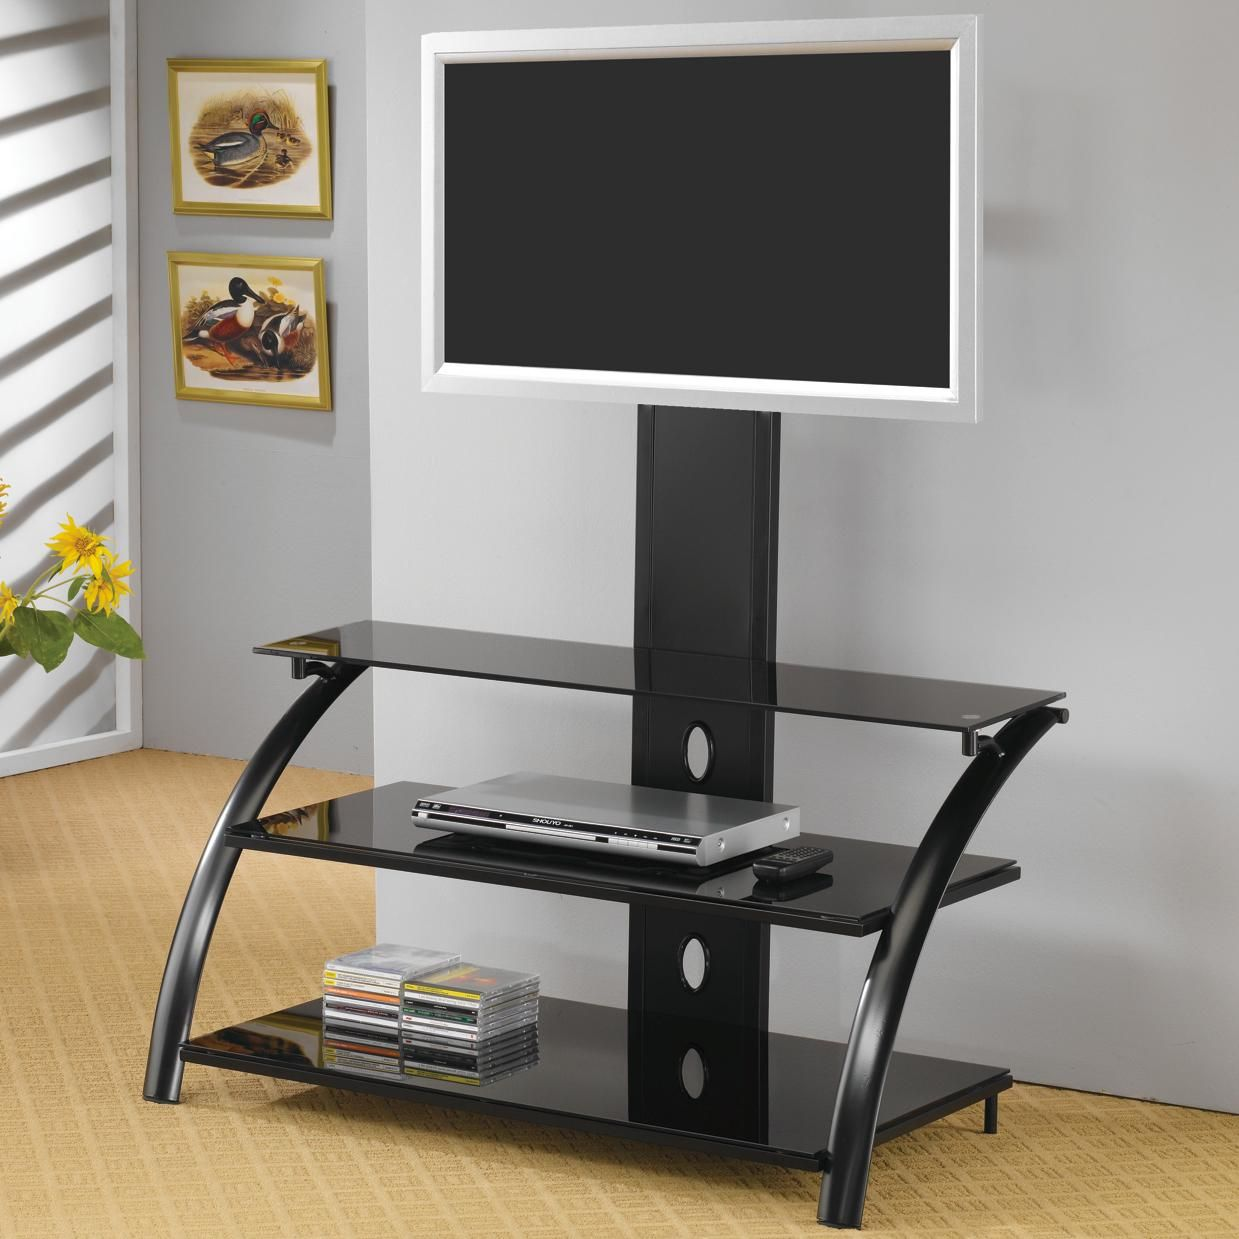 Great Tv Stand For A Temporary Home Or College Dorm College